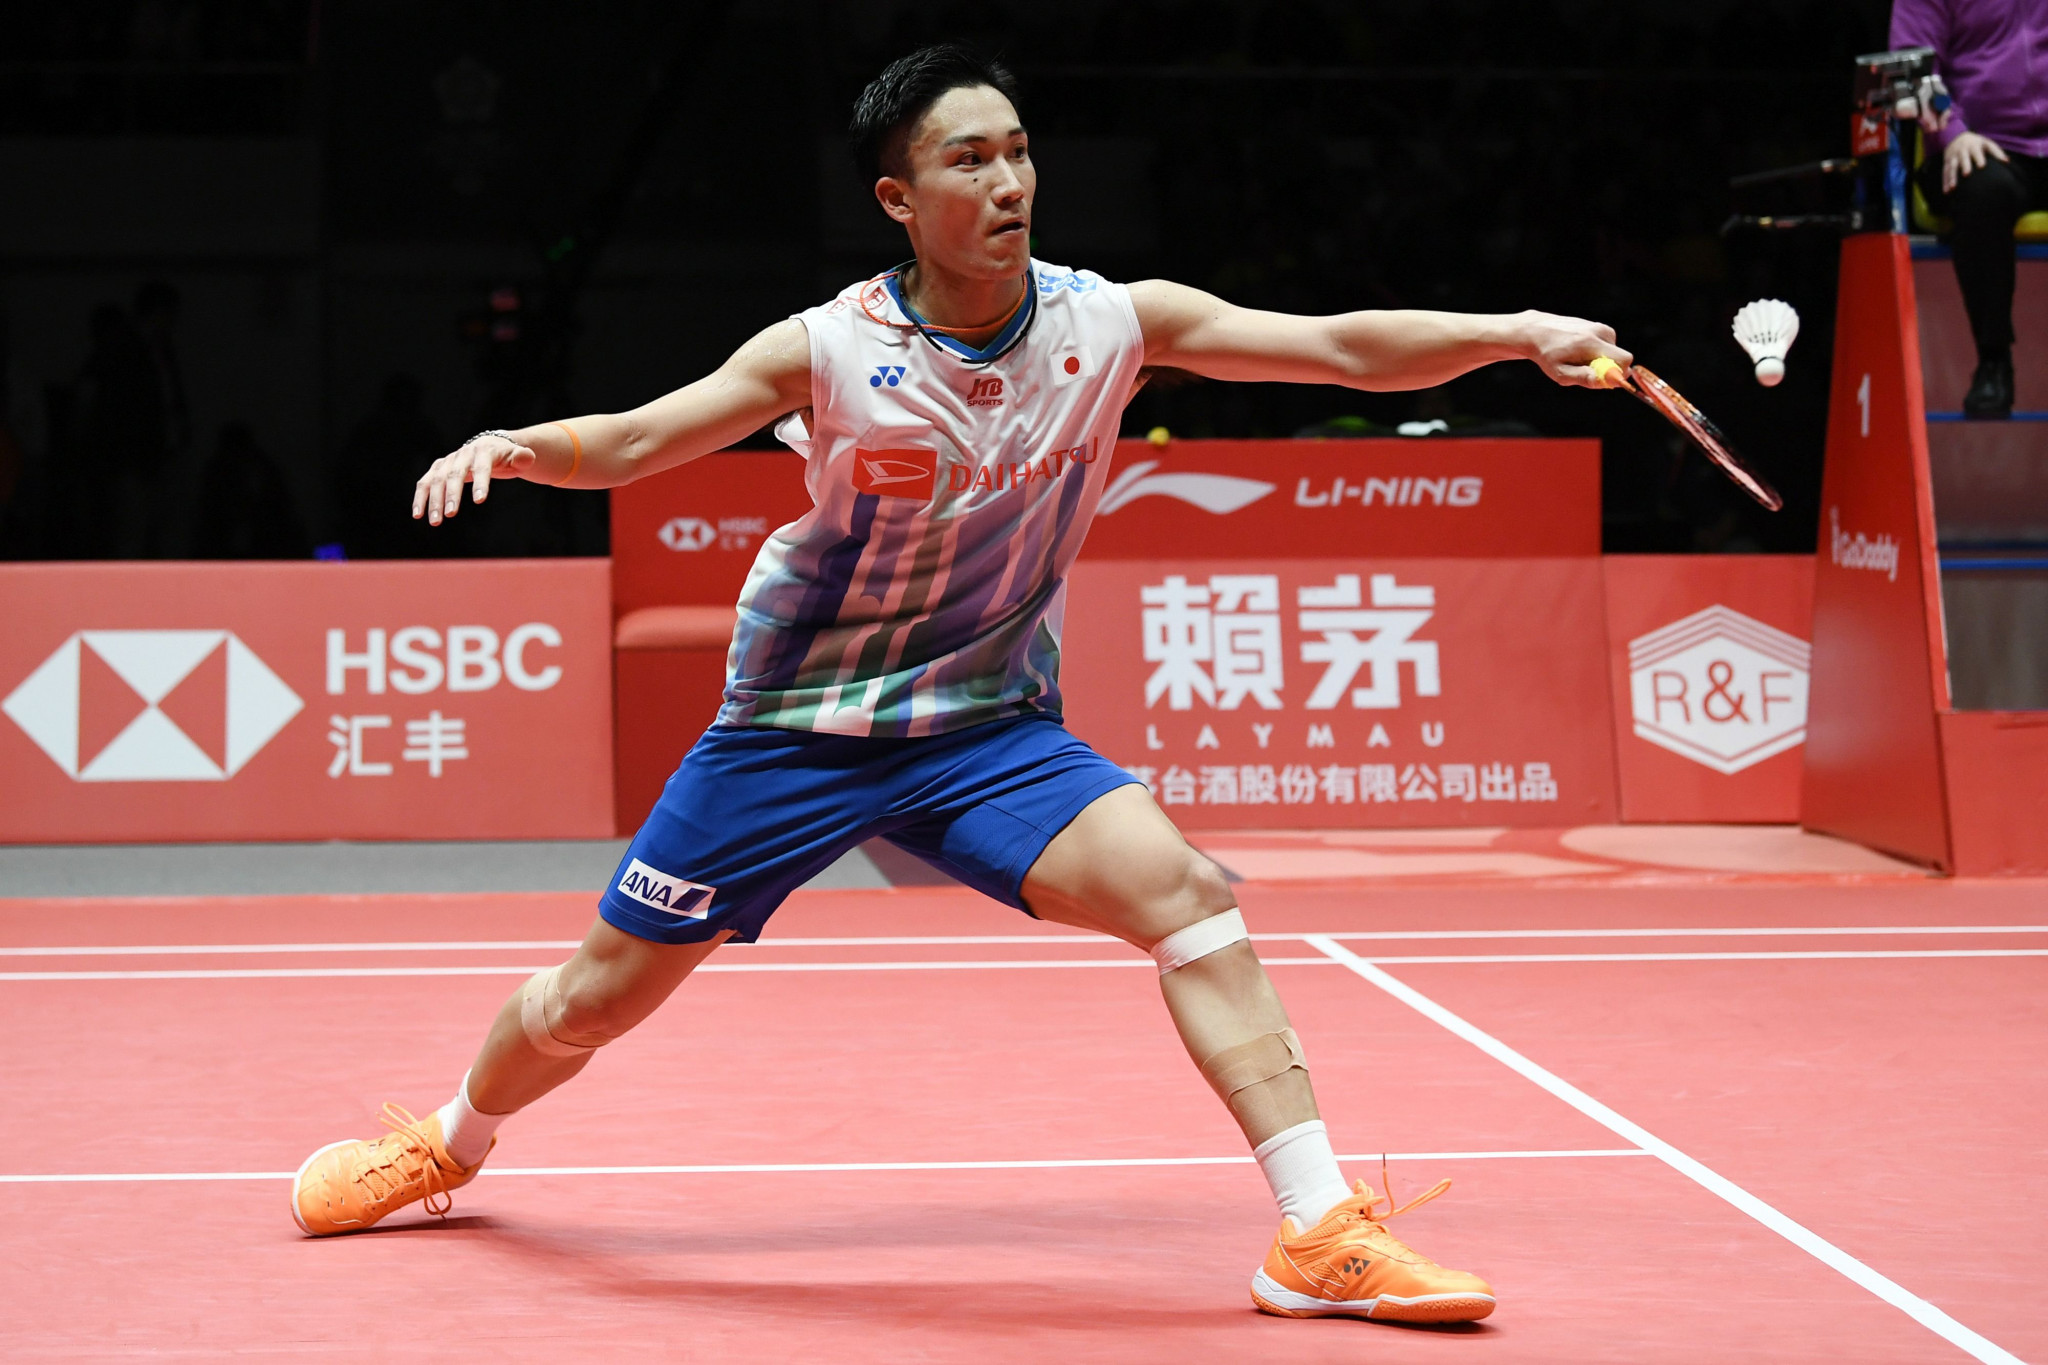 Top seed Momota outclasses Ginting to reach semi-finals at BWF Indonesia Masters